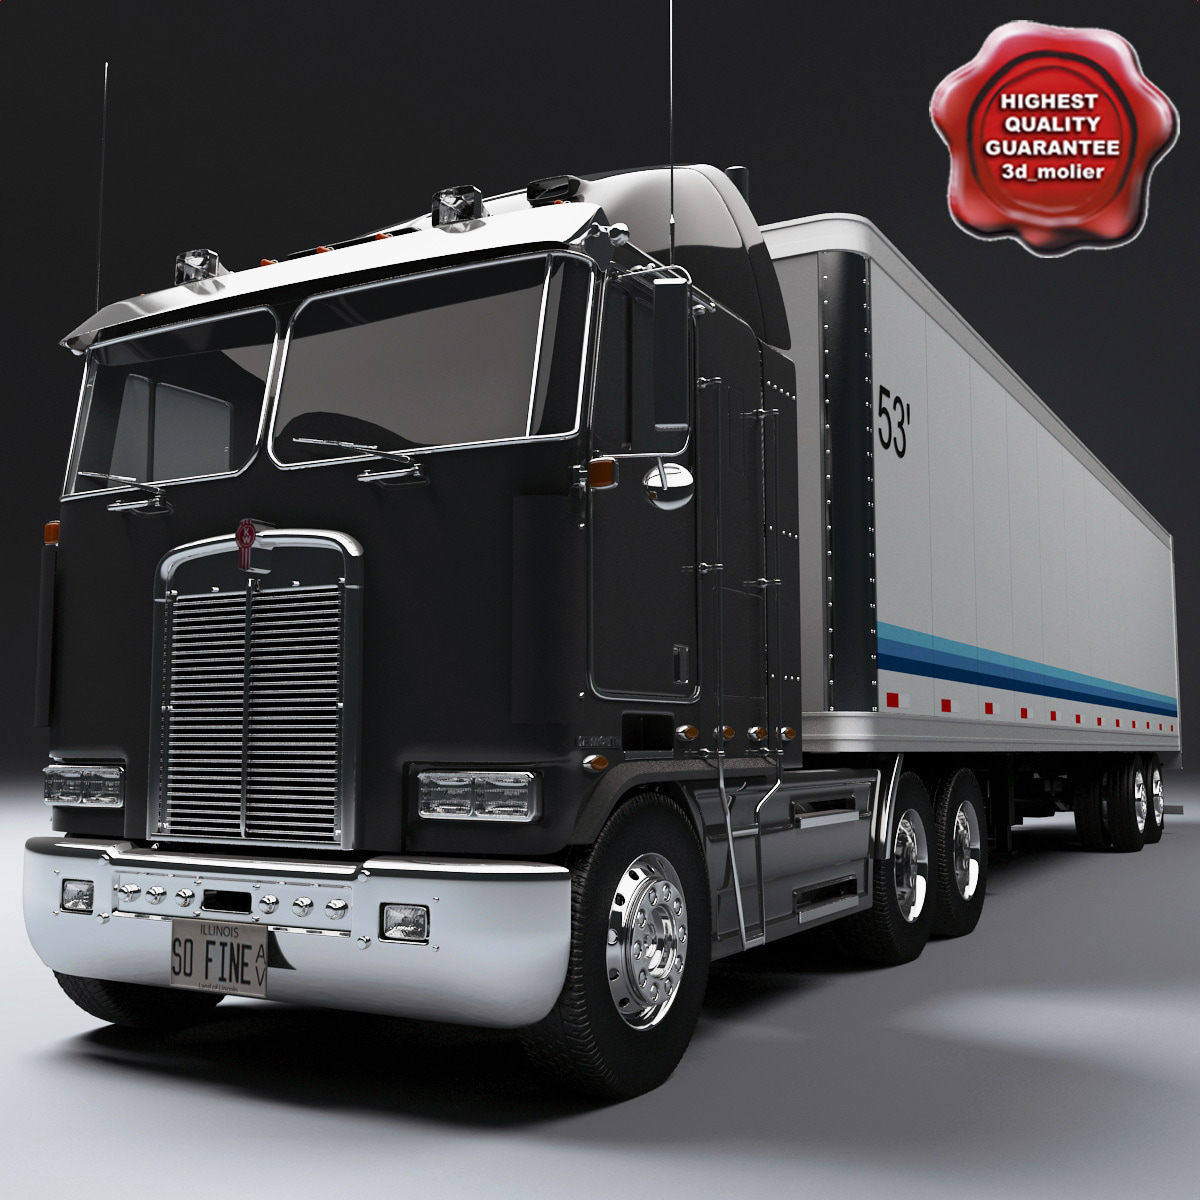 Kenworth_K100_Trailer_00.jpg